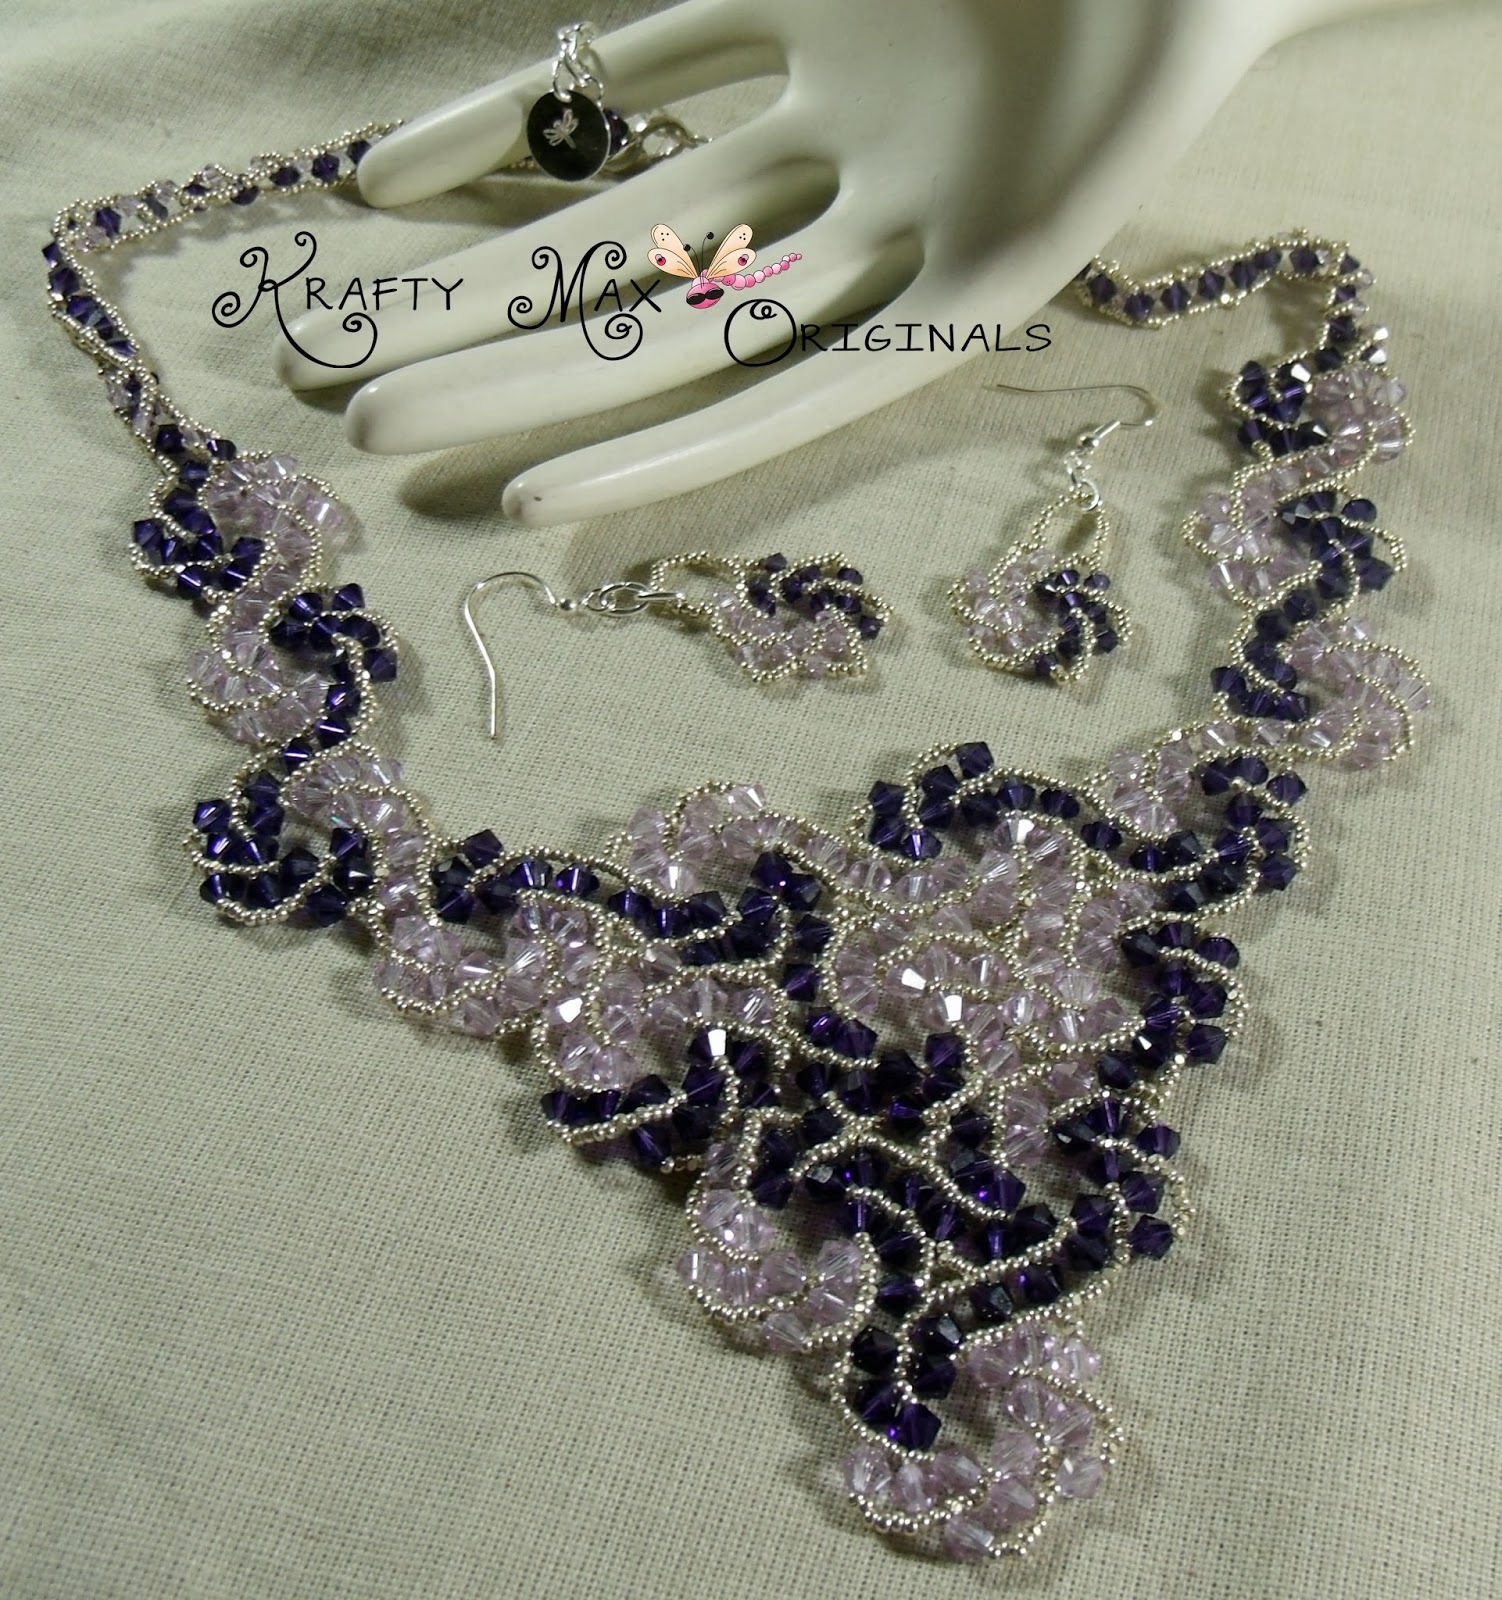 http://www.artfire.com/ext/shop/product_view/KraftyMax/7208177/purple_swarovski_crystal_swirl_beadwoven_lace_necklace_and_earrings/handmade/jewelry/necklaces/beadwoven